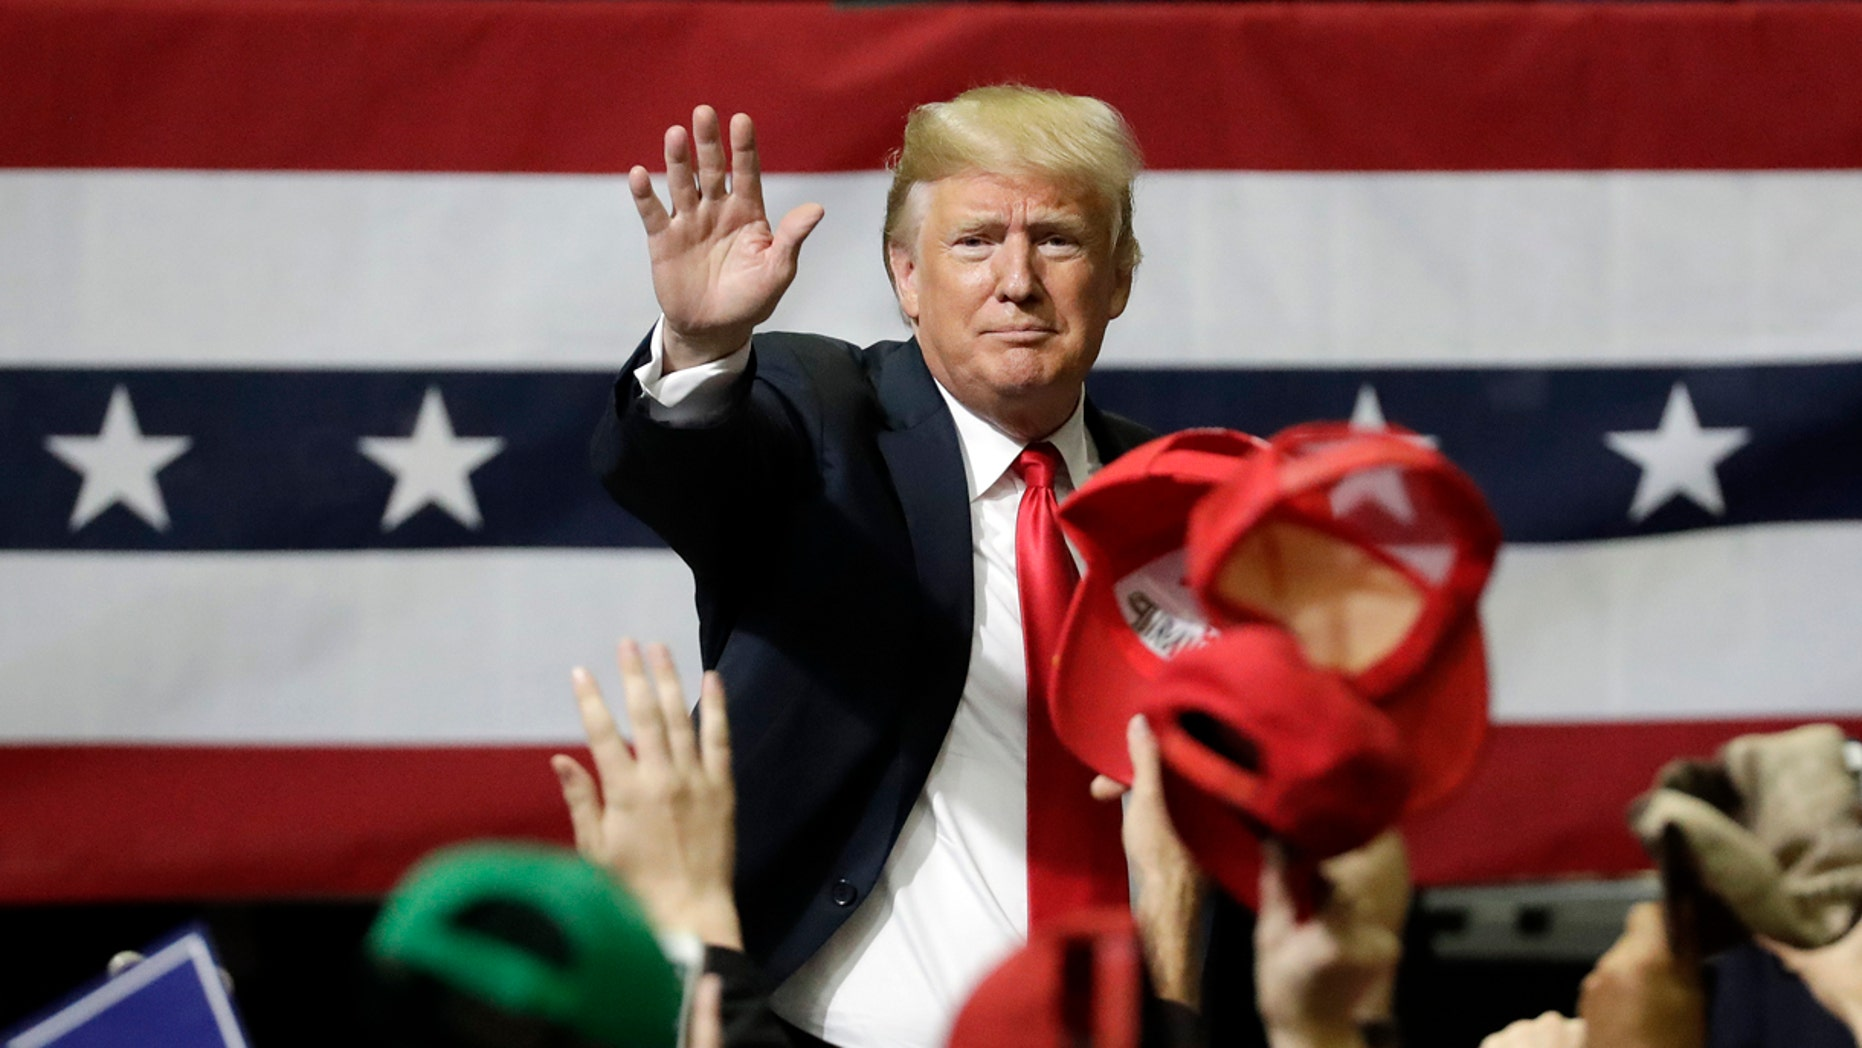 FILE -- President Donald Trump acknowledges the crowd as he leaves a rally Sunday, Nov. 4, 2018, in Chattanooga, Tenn. (AP Photo/Mark Humphrey)